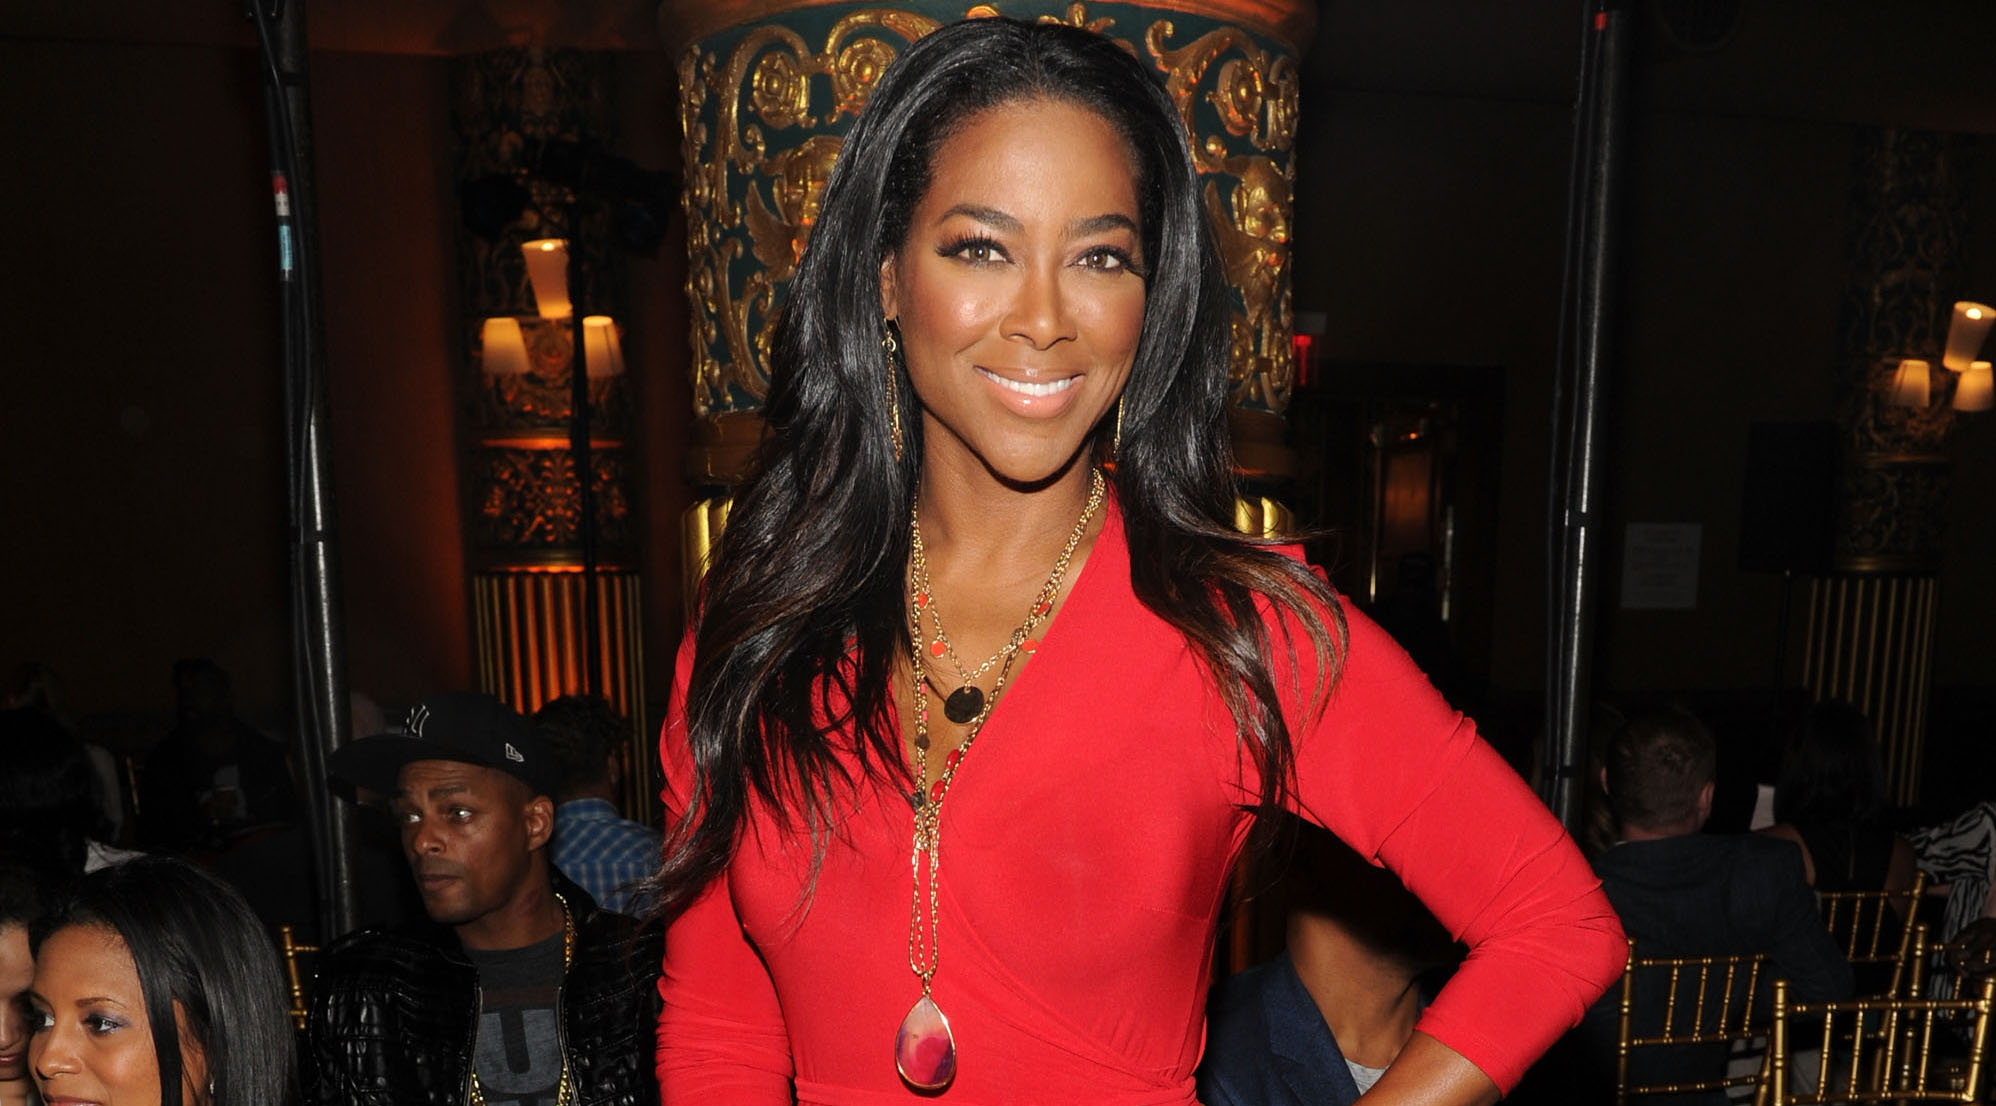 kenya-moore-decides-on-rhoa-fate-heres-who-she-wants-to-join-the-franchise-and-who-she-would-bring-back